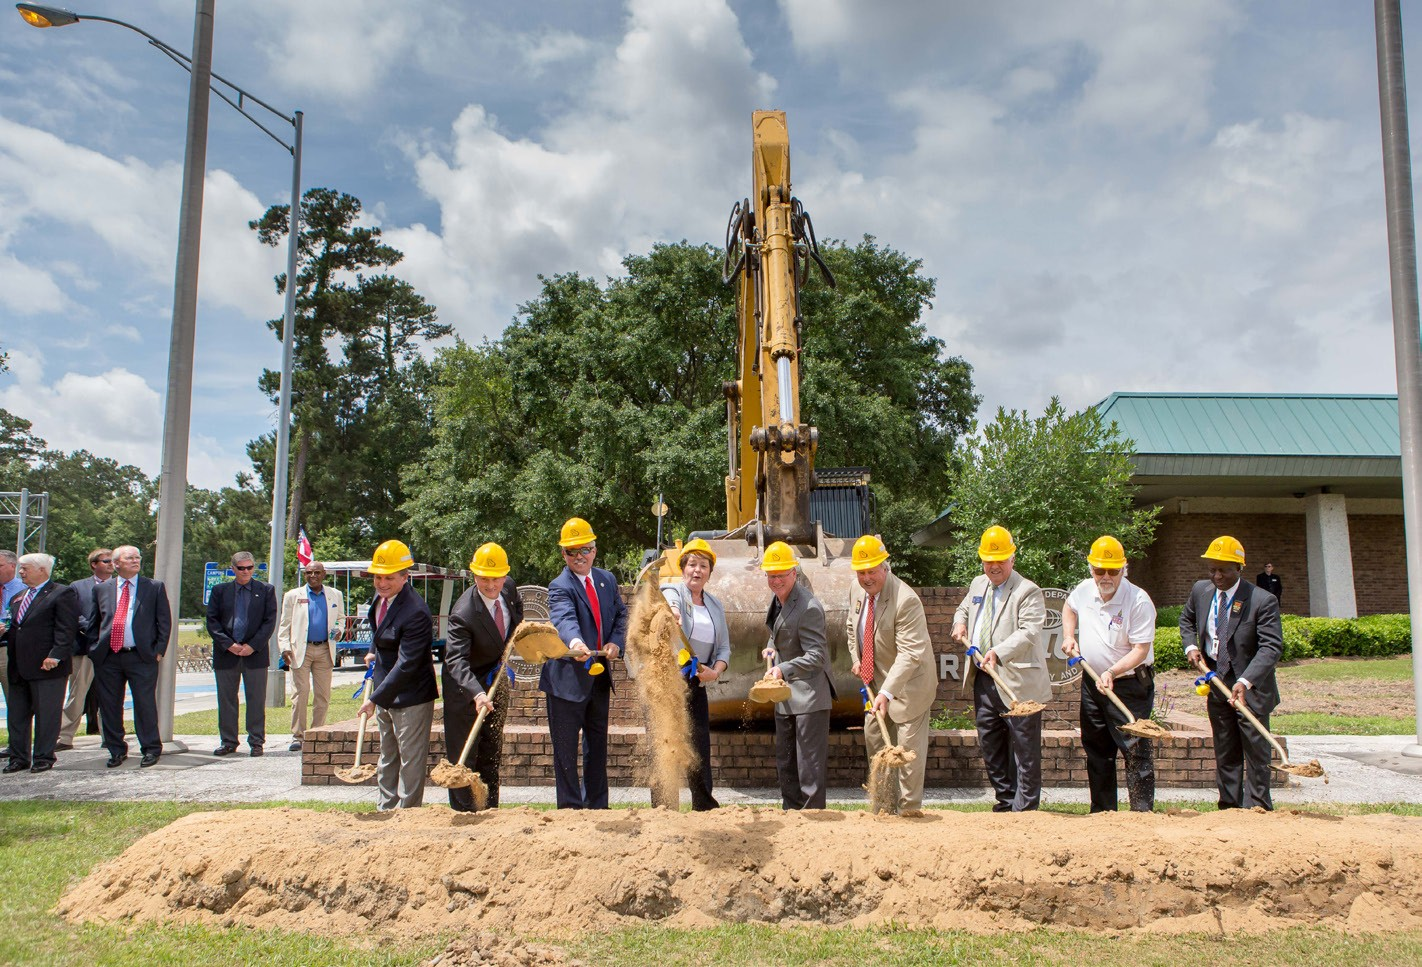 The Georgia Department of Transportation held a ground breaking ceremony last Tuesday for the new I-95 Welcome Center in Chatham County to be located at Mile Marker 111I-95 South, Port Wentworth, GA.